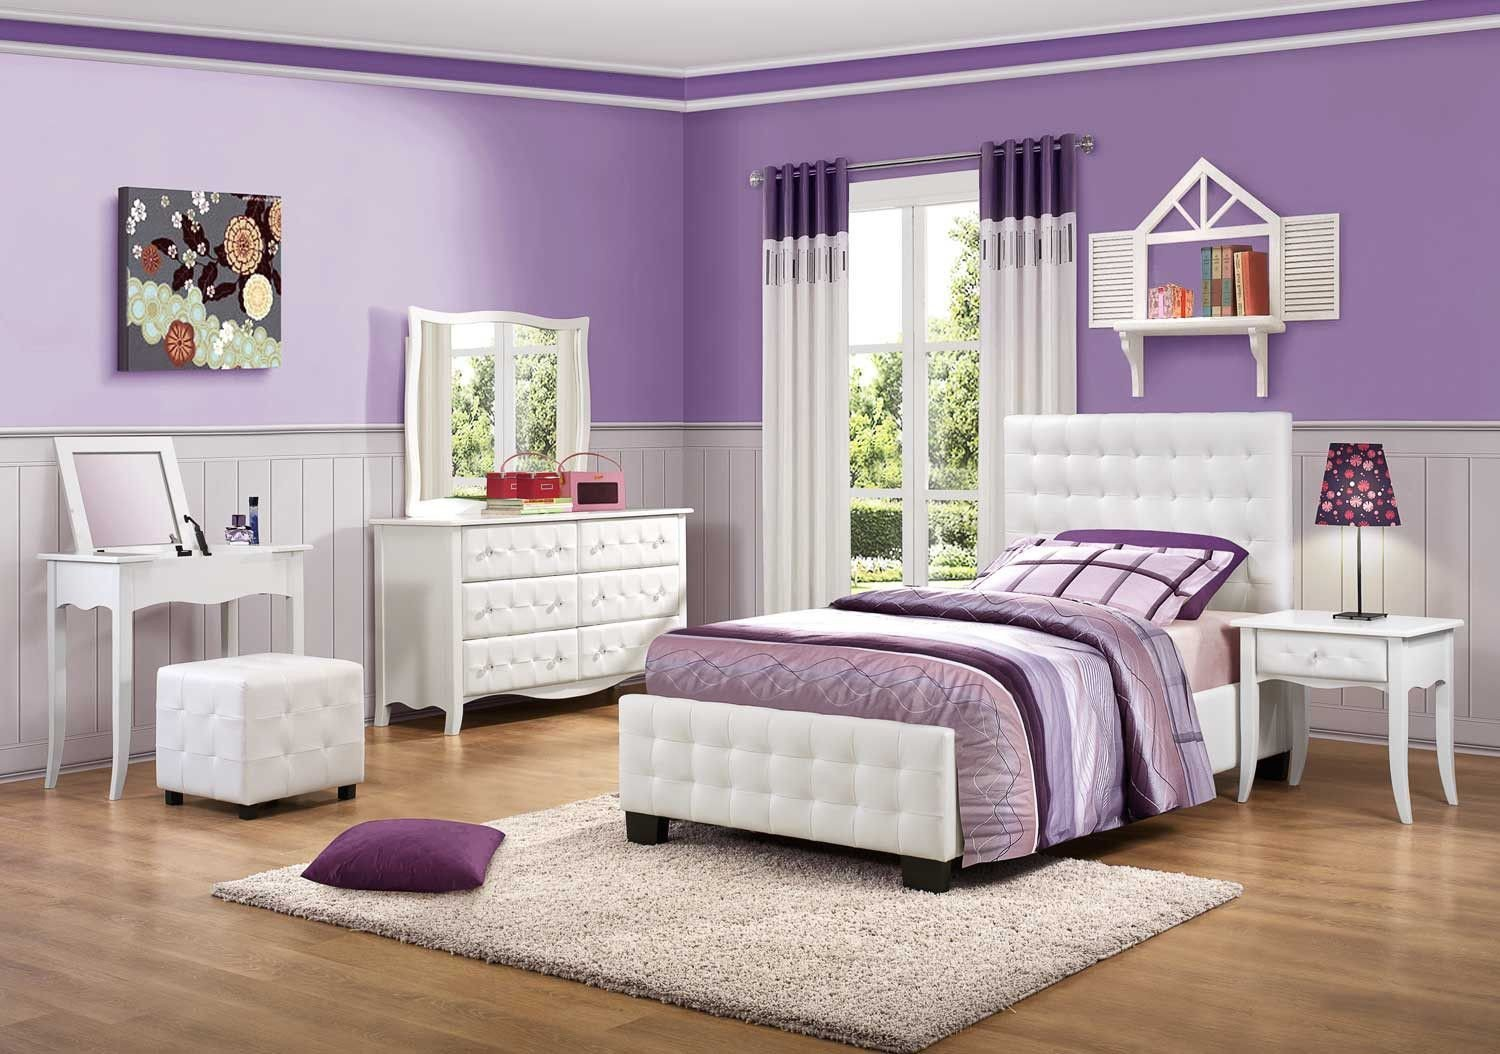 Bedroom Set for Girl Elegant Sparkle Bedroom